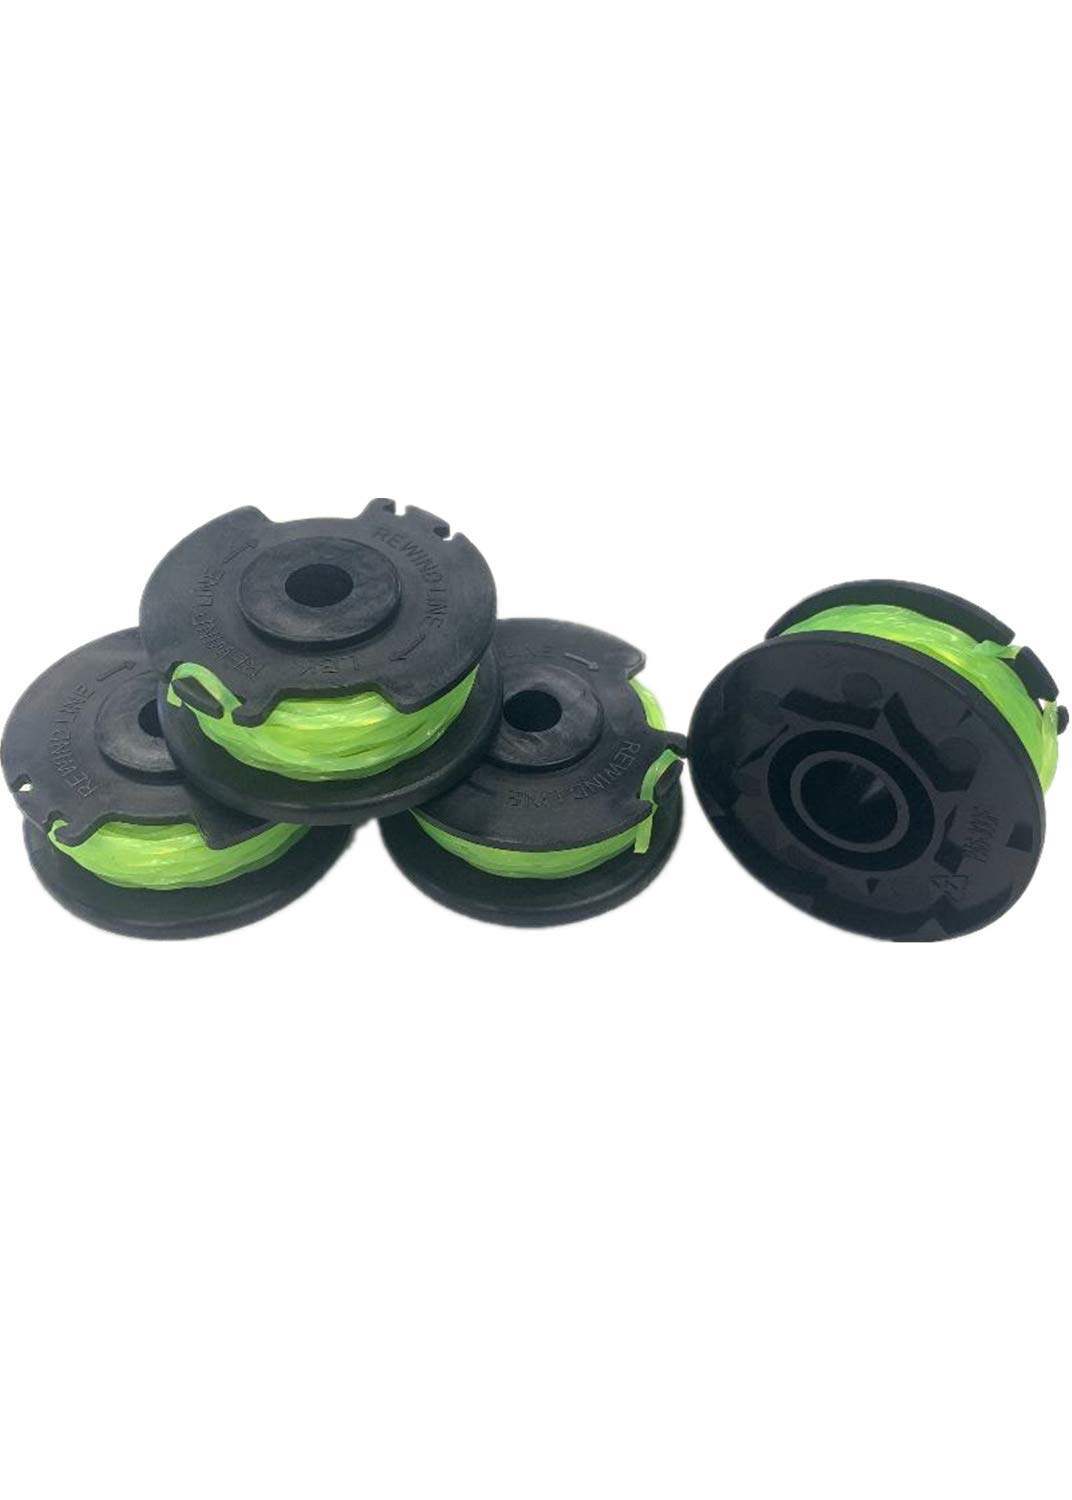 LBK Replacement Trimmer Spool Line for Scotts AC80S3, Compatible with Scotts AC80S3 0.080'', 4 Pack, Made in USA